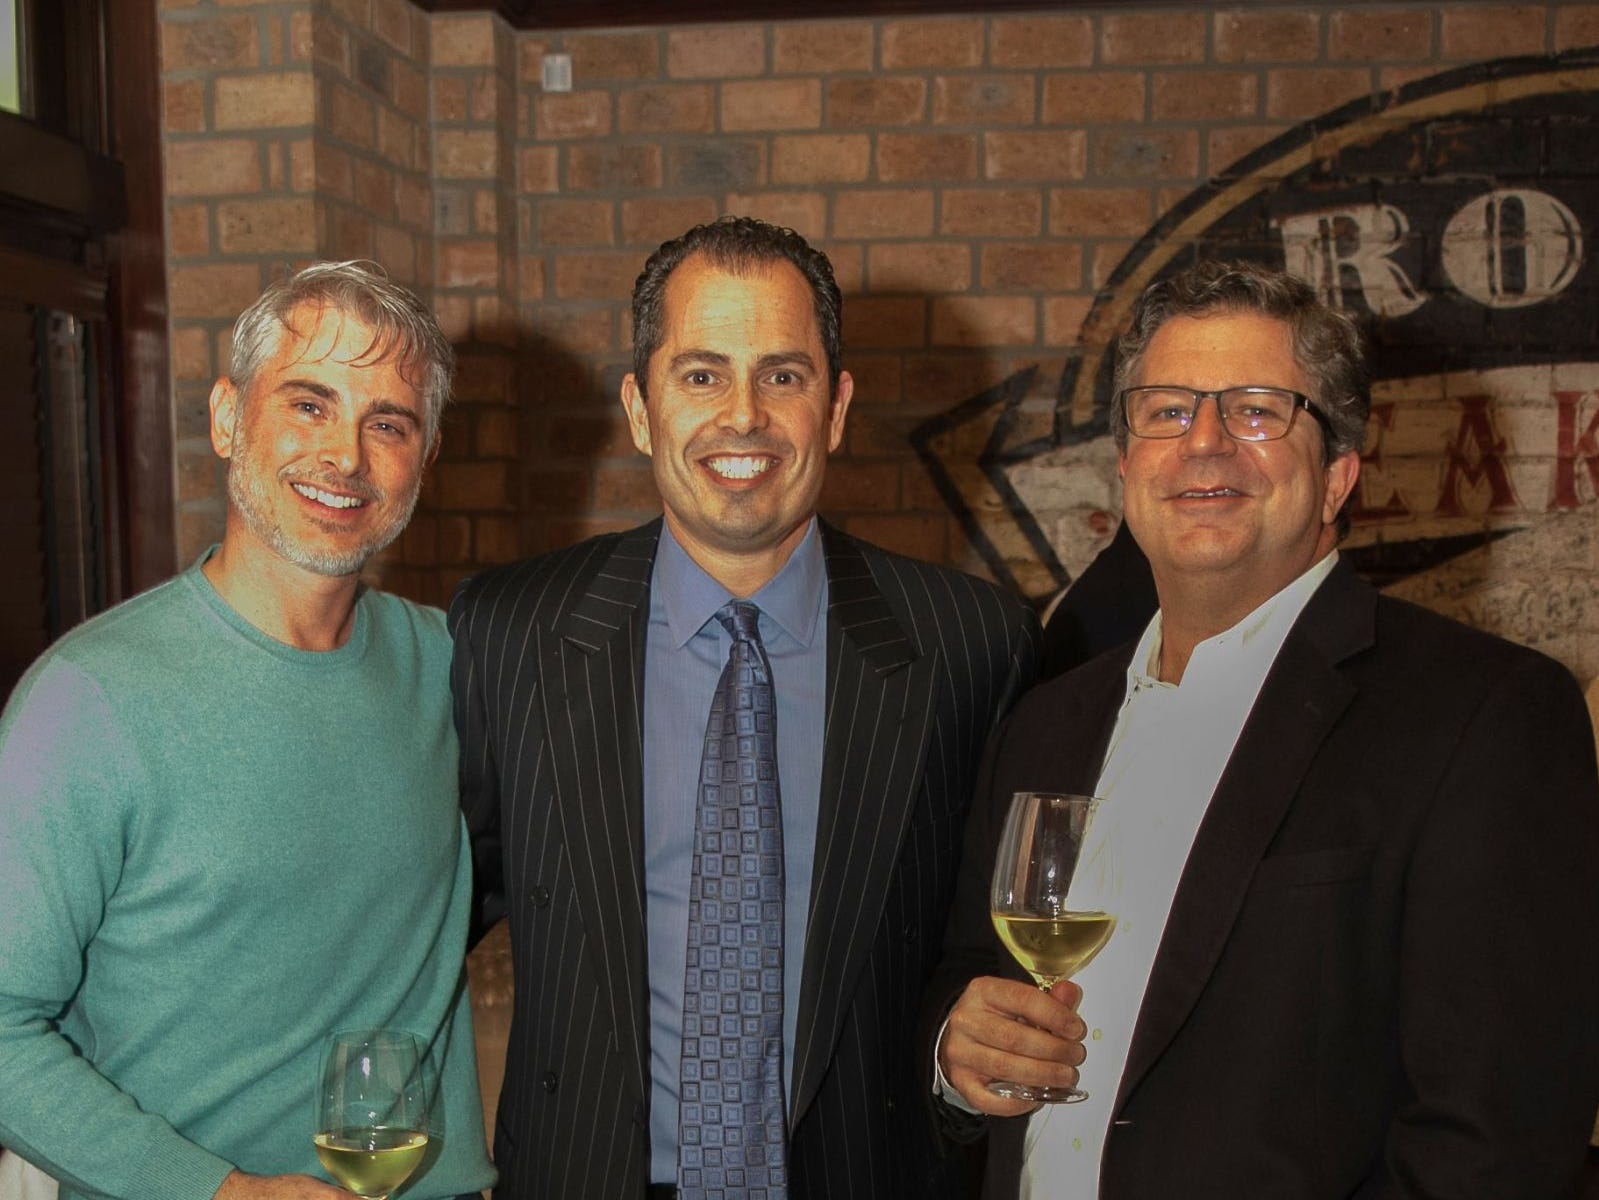 Lou Reynolds, Pat Grande, Marc Chase. Christina Gibbons of Special Properties held a cocktail reception to acknowledge her clients at Roots Steakhouse in Ridgewood. 02/07/2019